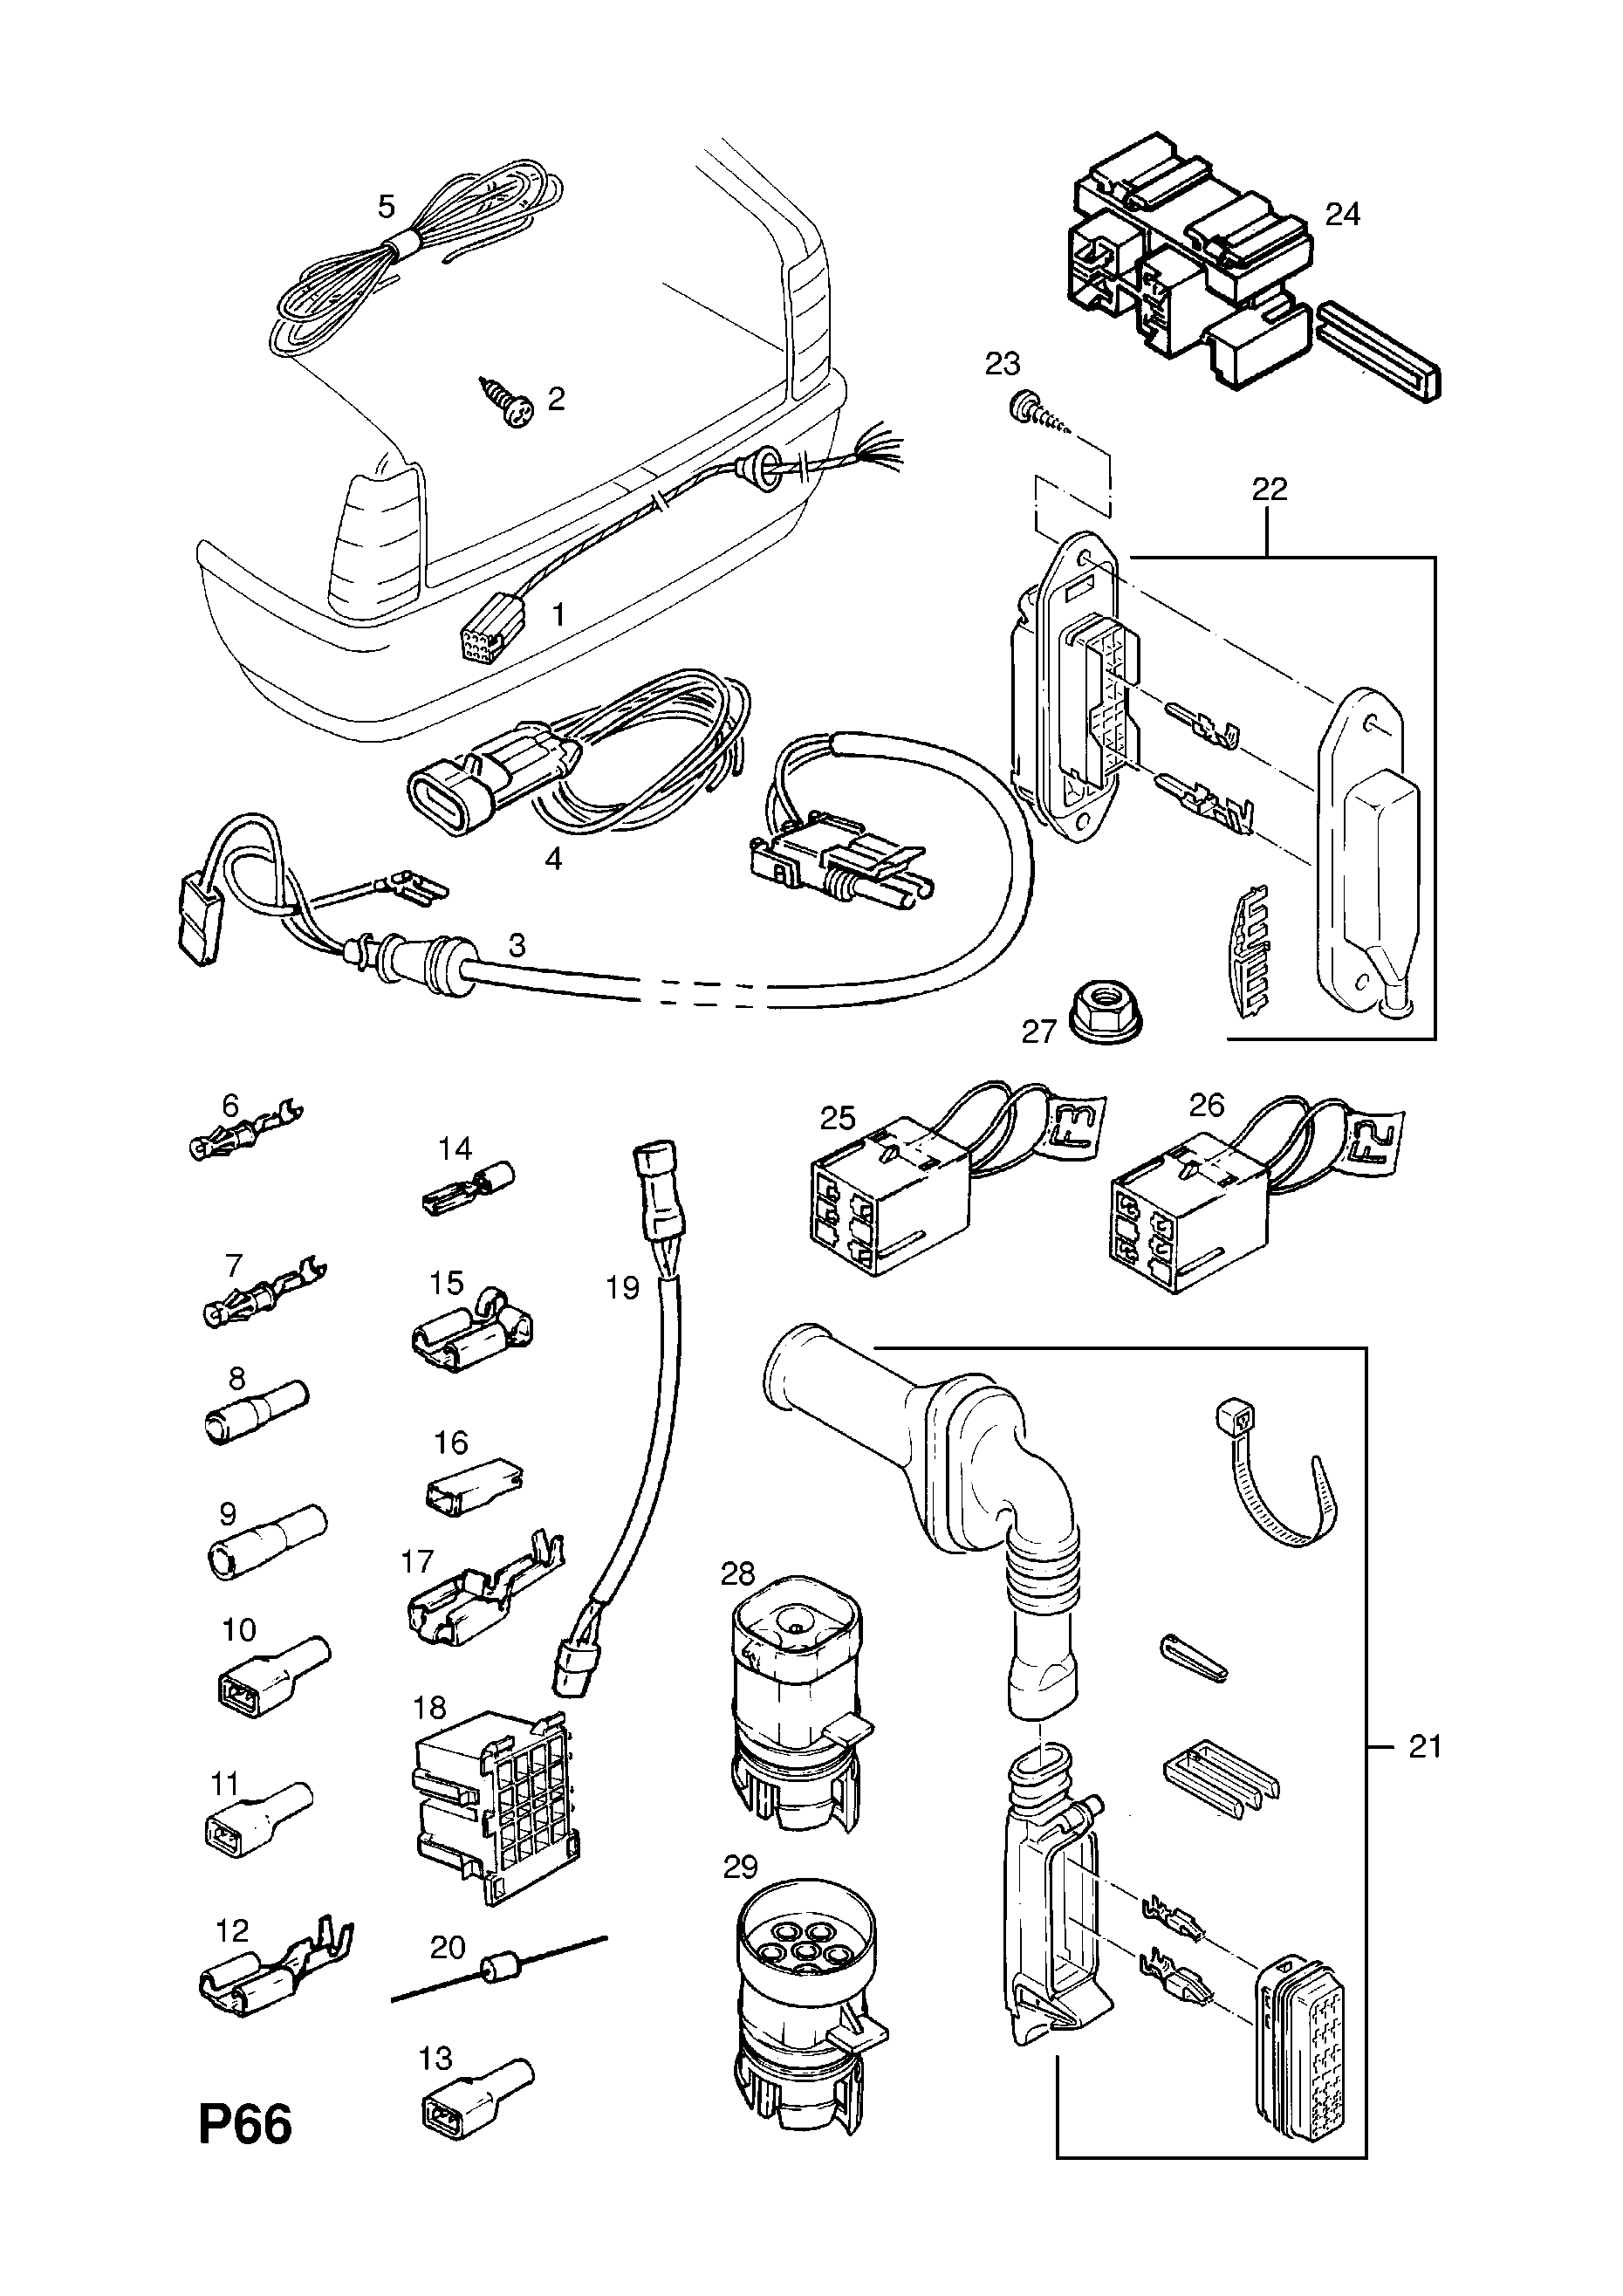 Opel Senator Wiring Diagram Library 1958 B 1988 1994 P Electrical 10 Harness 87 List Of Parts